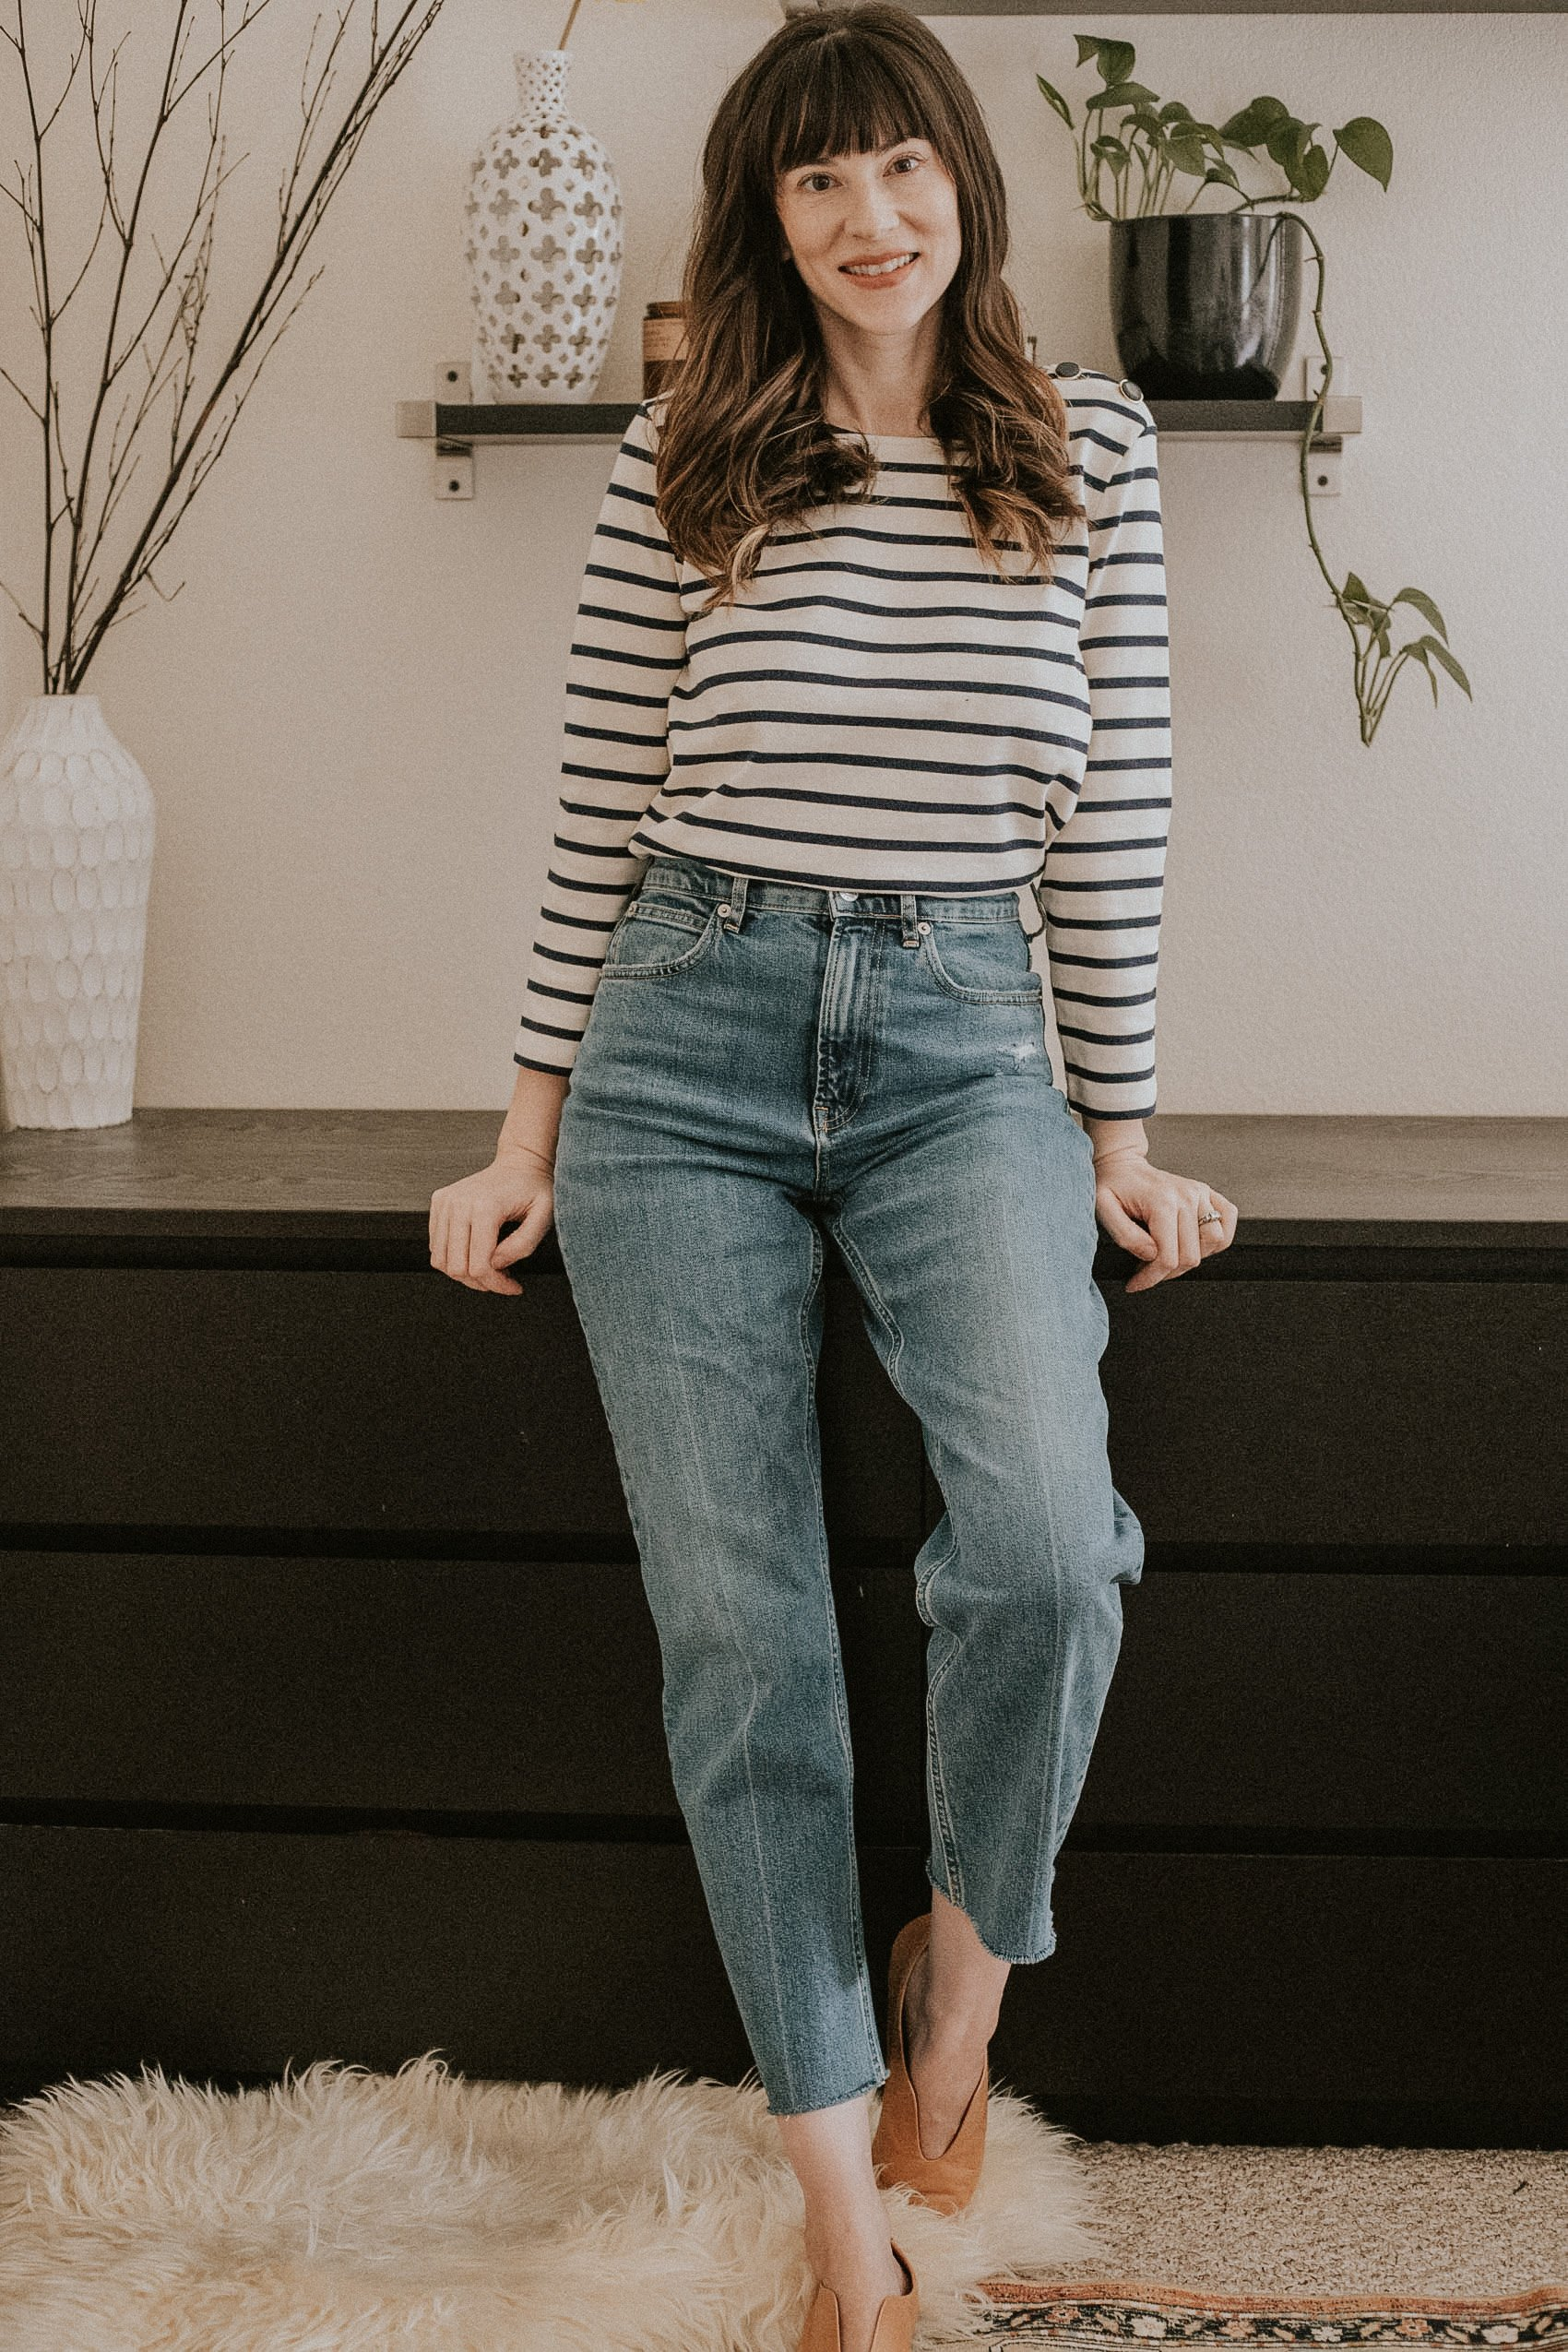 Sezane Colette Striped Top with High Waist Everlane Jeans